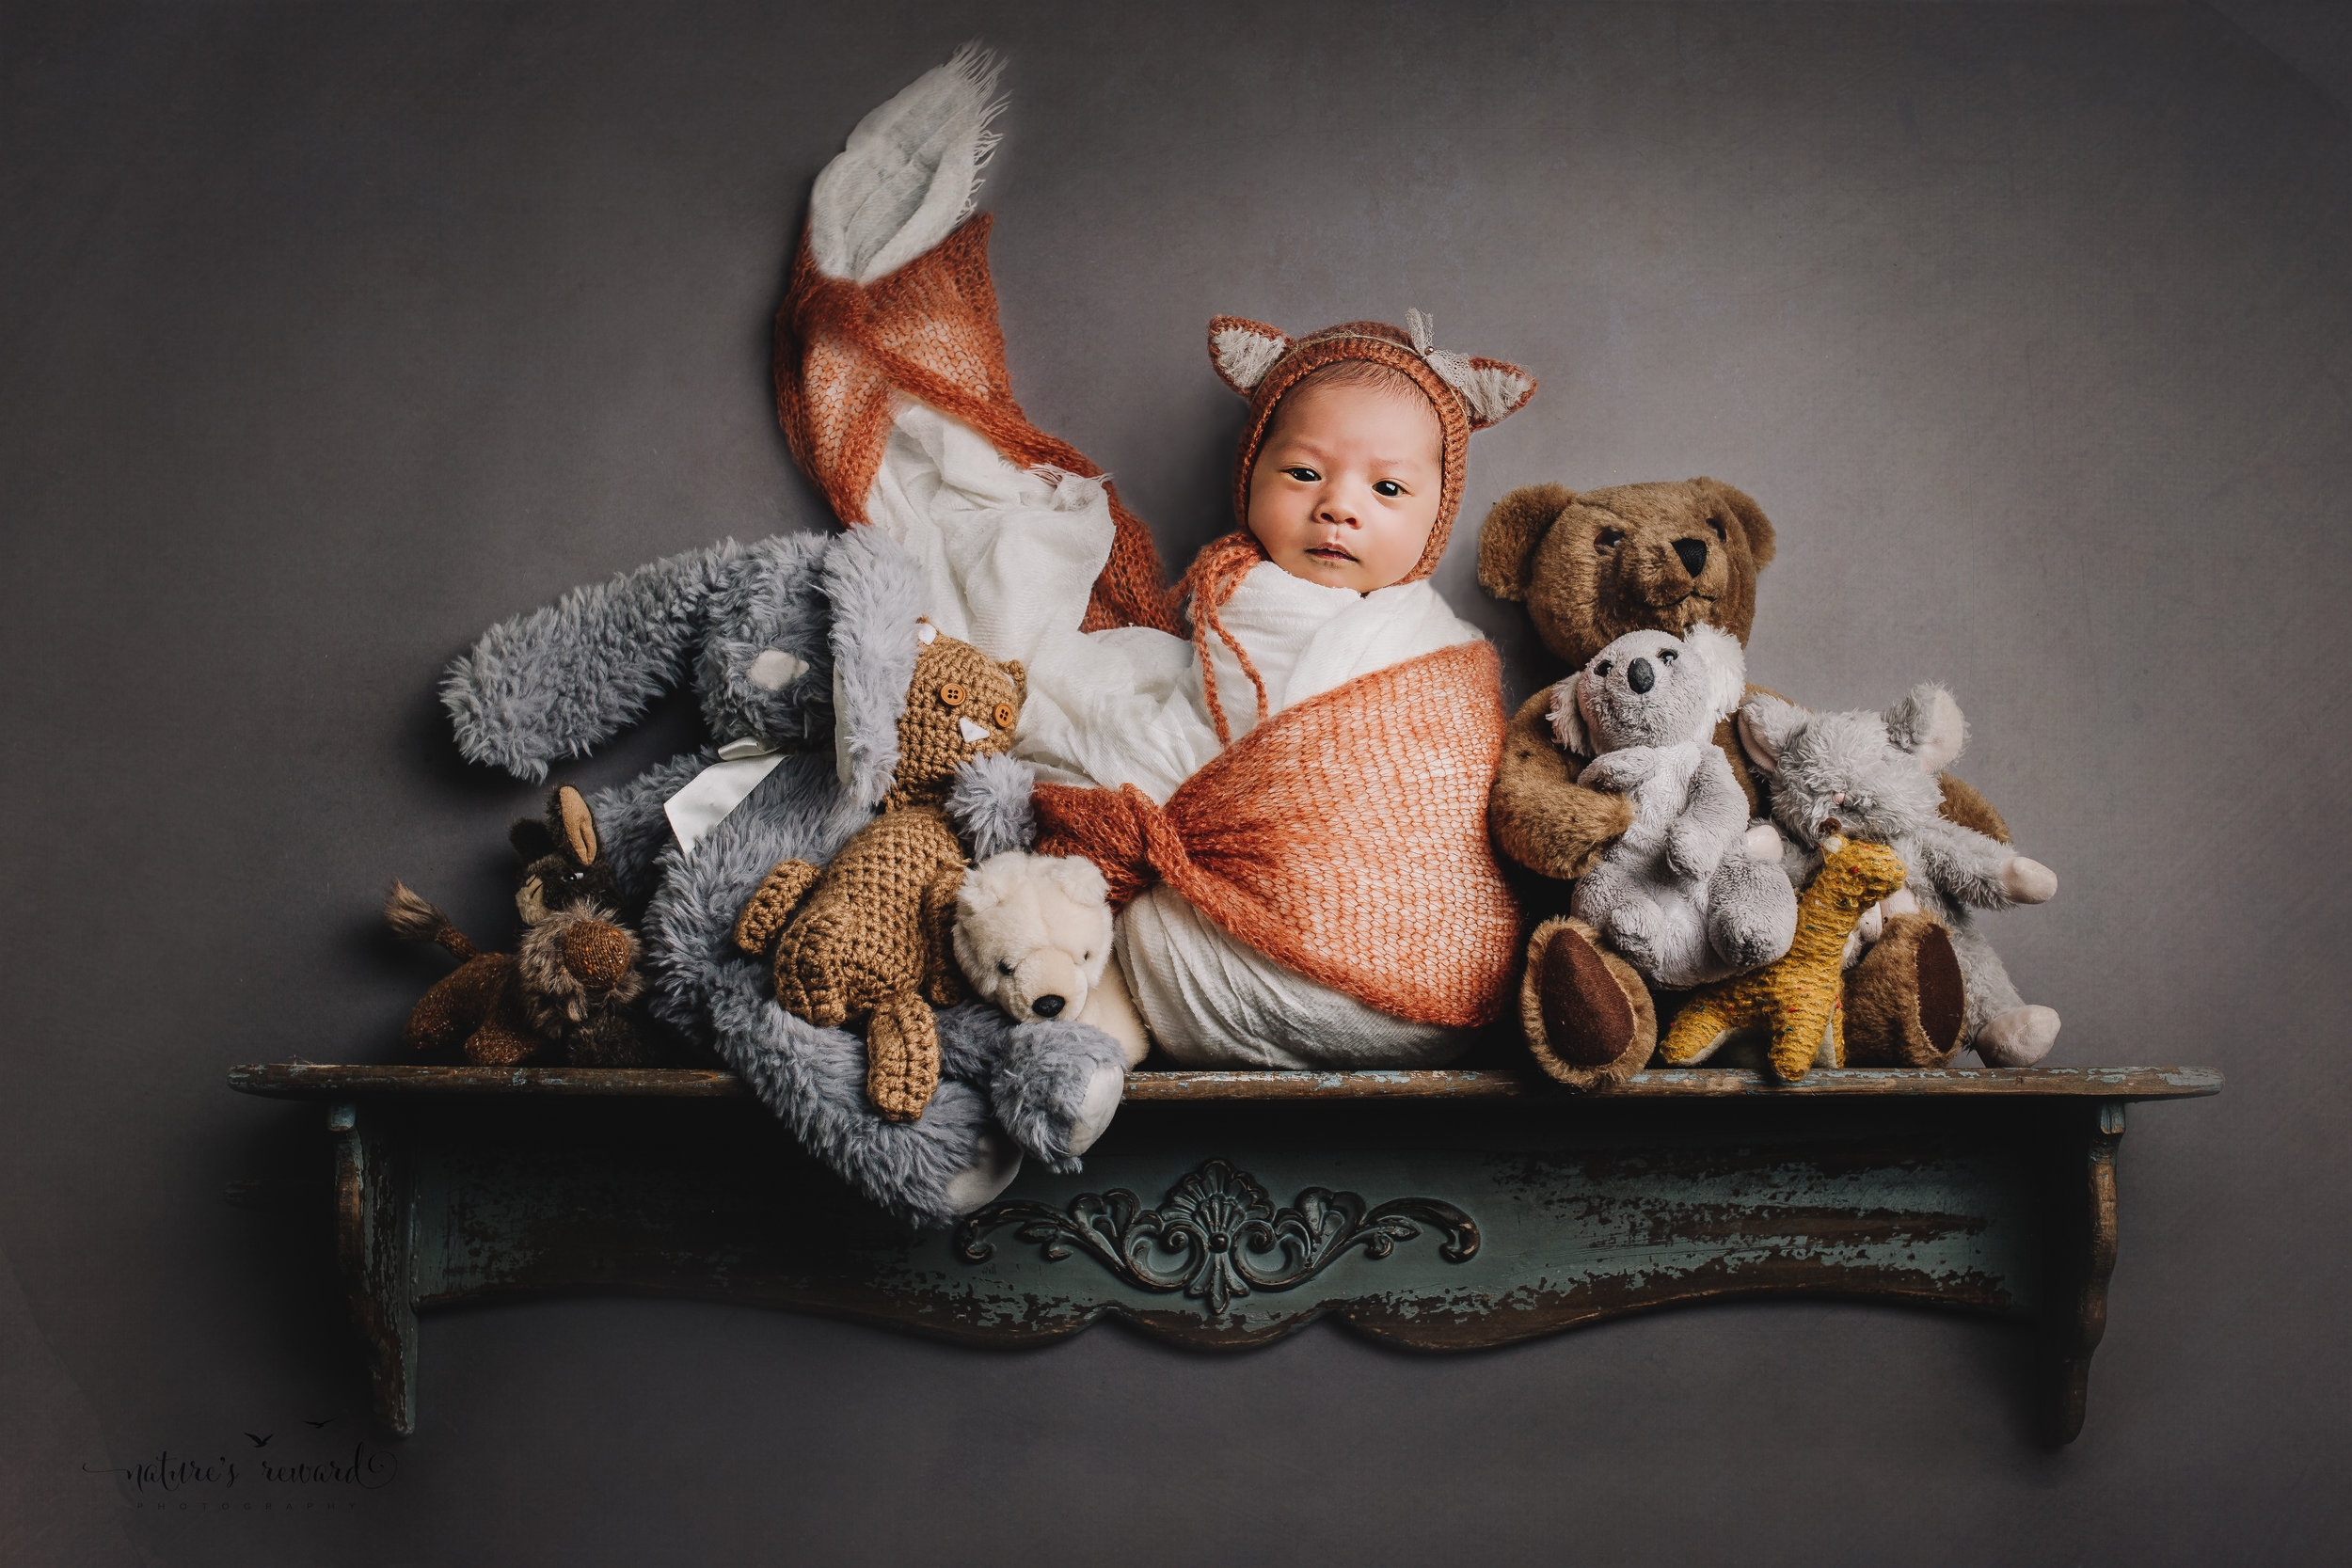 Sweet baby girl on a shelf wearing a fox bonnet while surrounded by all her woodland stuffs in this portrait by Nature's Reward Photography